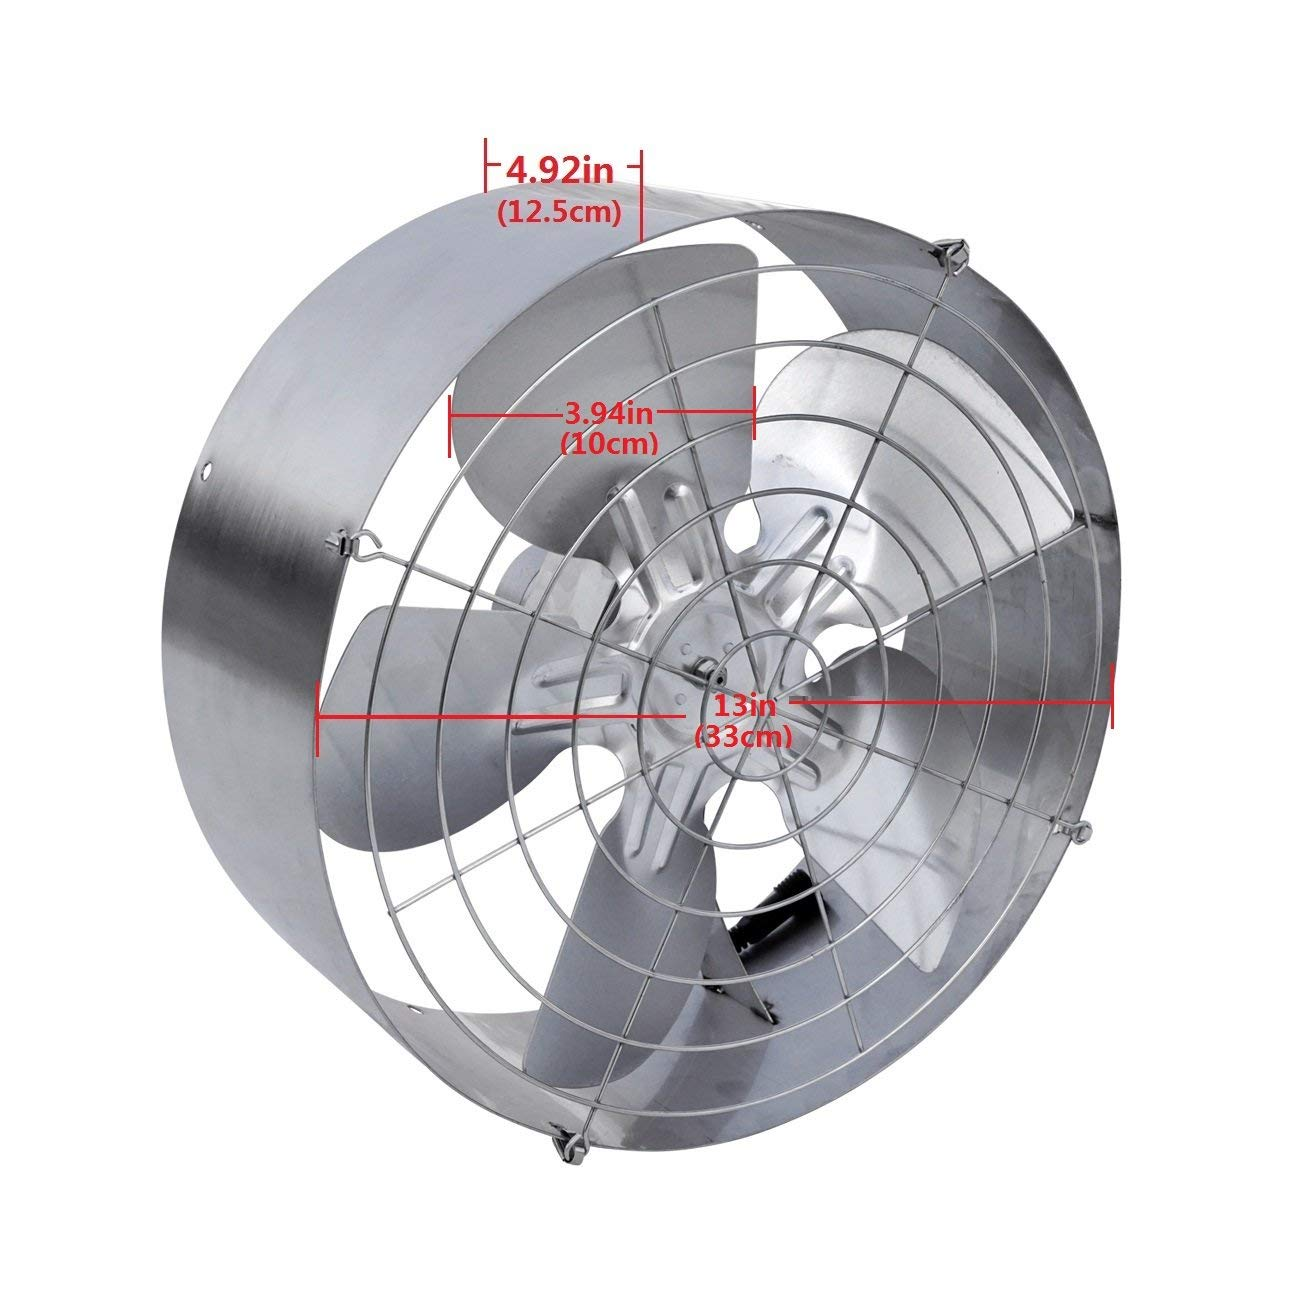 High Flow Vent Fan : High power w solar air cooling vent fan ventilation for